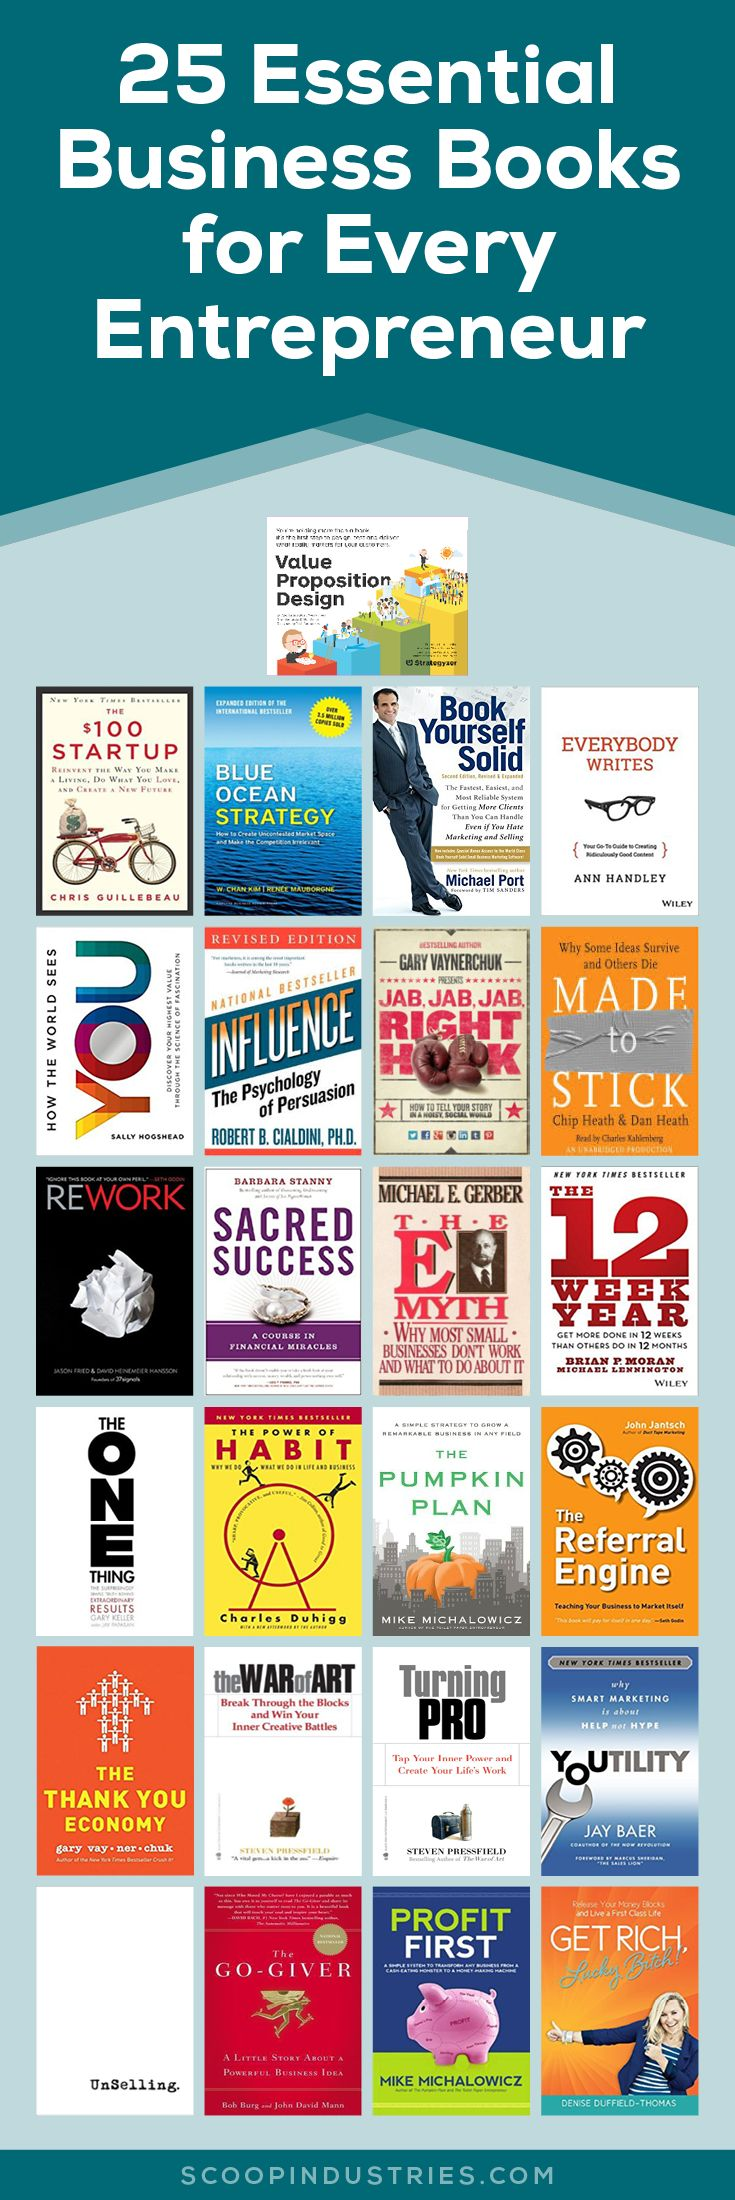 I've read a few of the books on this list and they are great. I look forward to reading the rest of them.